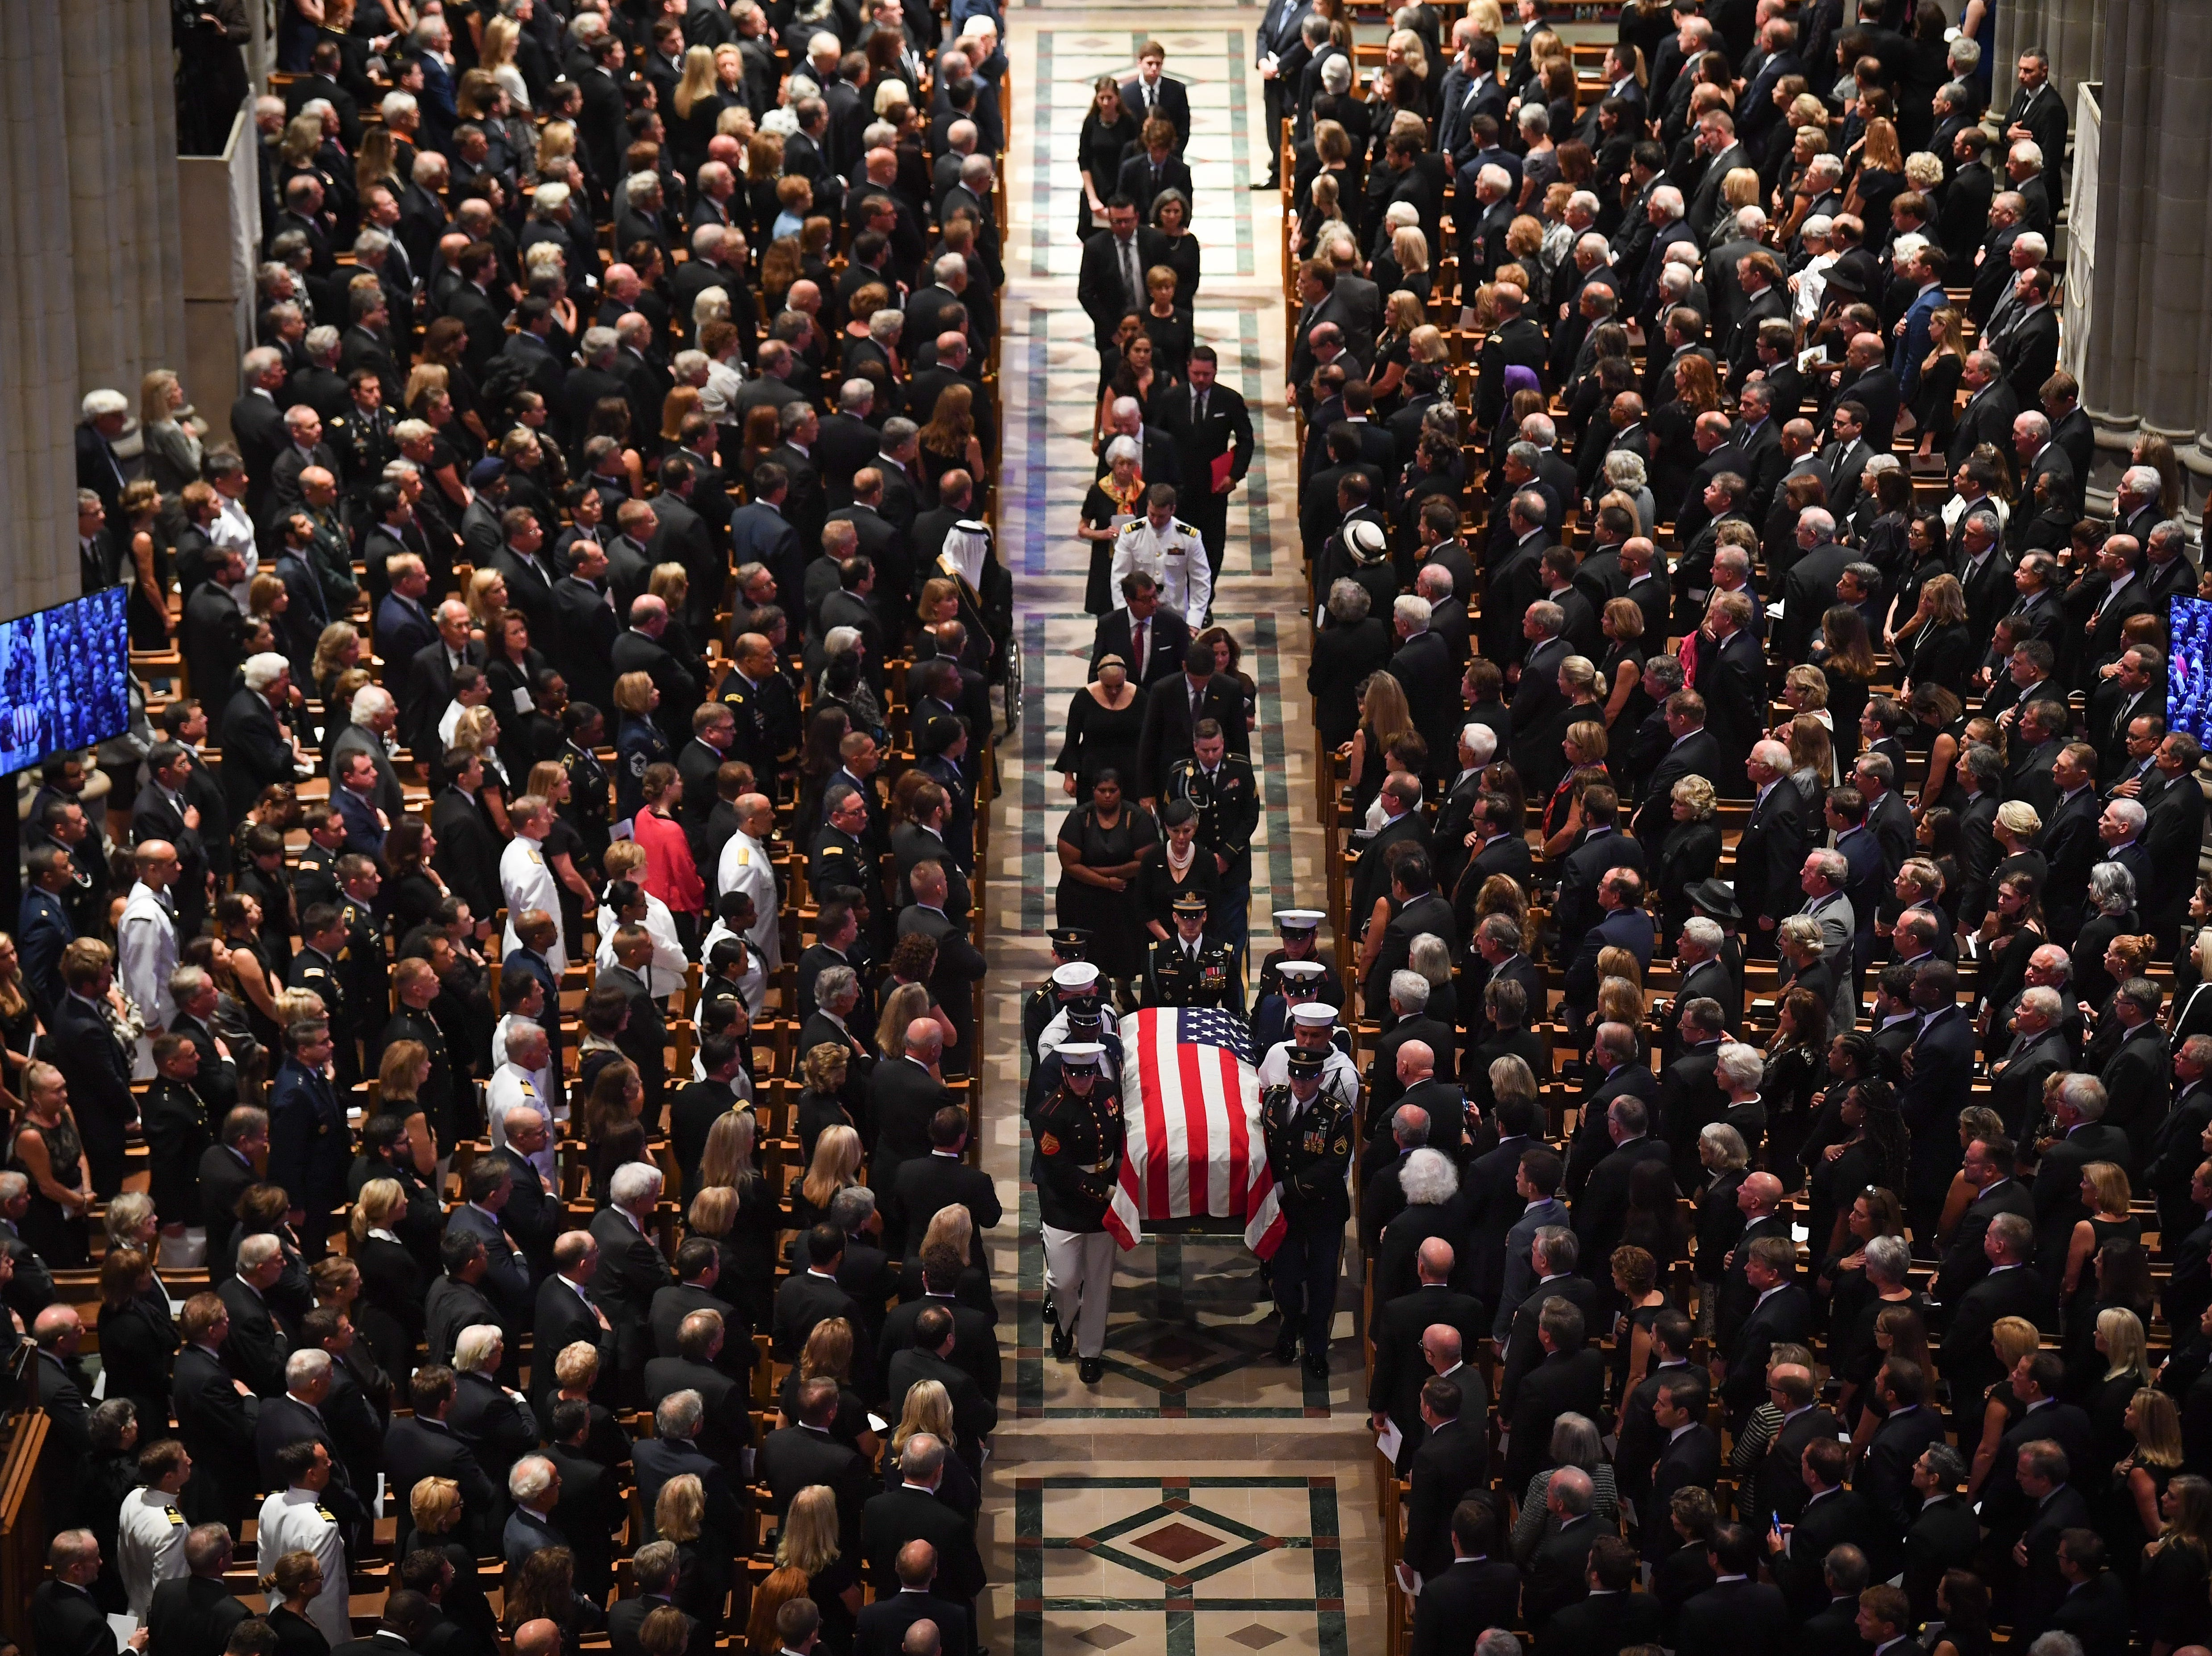 Sept. 1, 2018: Cindy McCain follows the casket of her husband at the conclusion of the memorial service for John McCain at the National Cathedral in Washington.